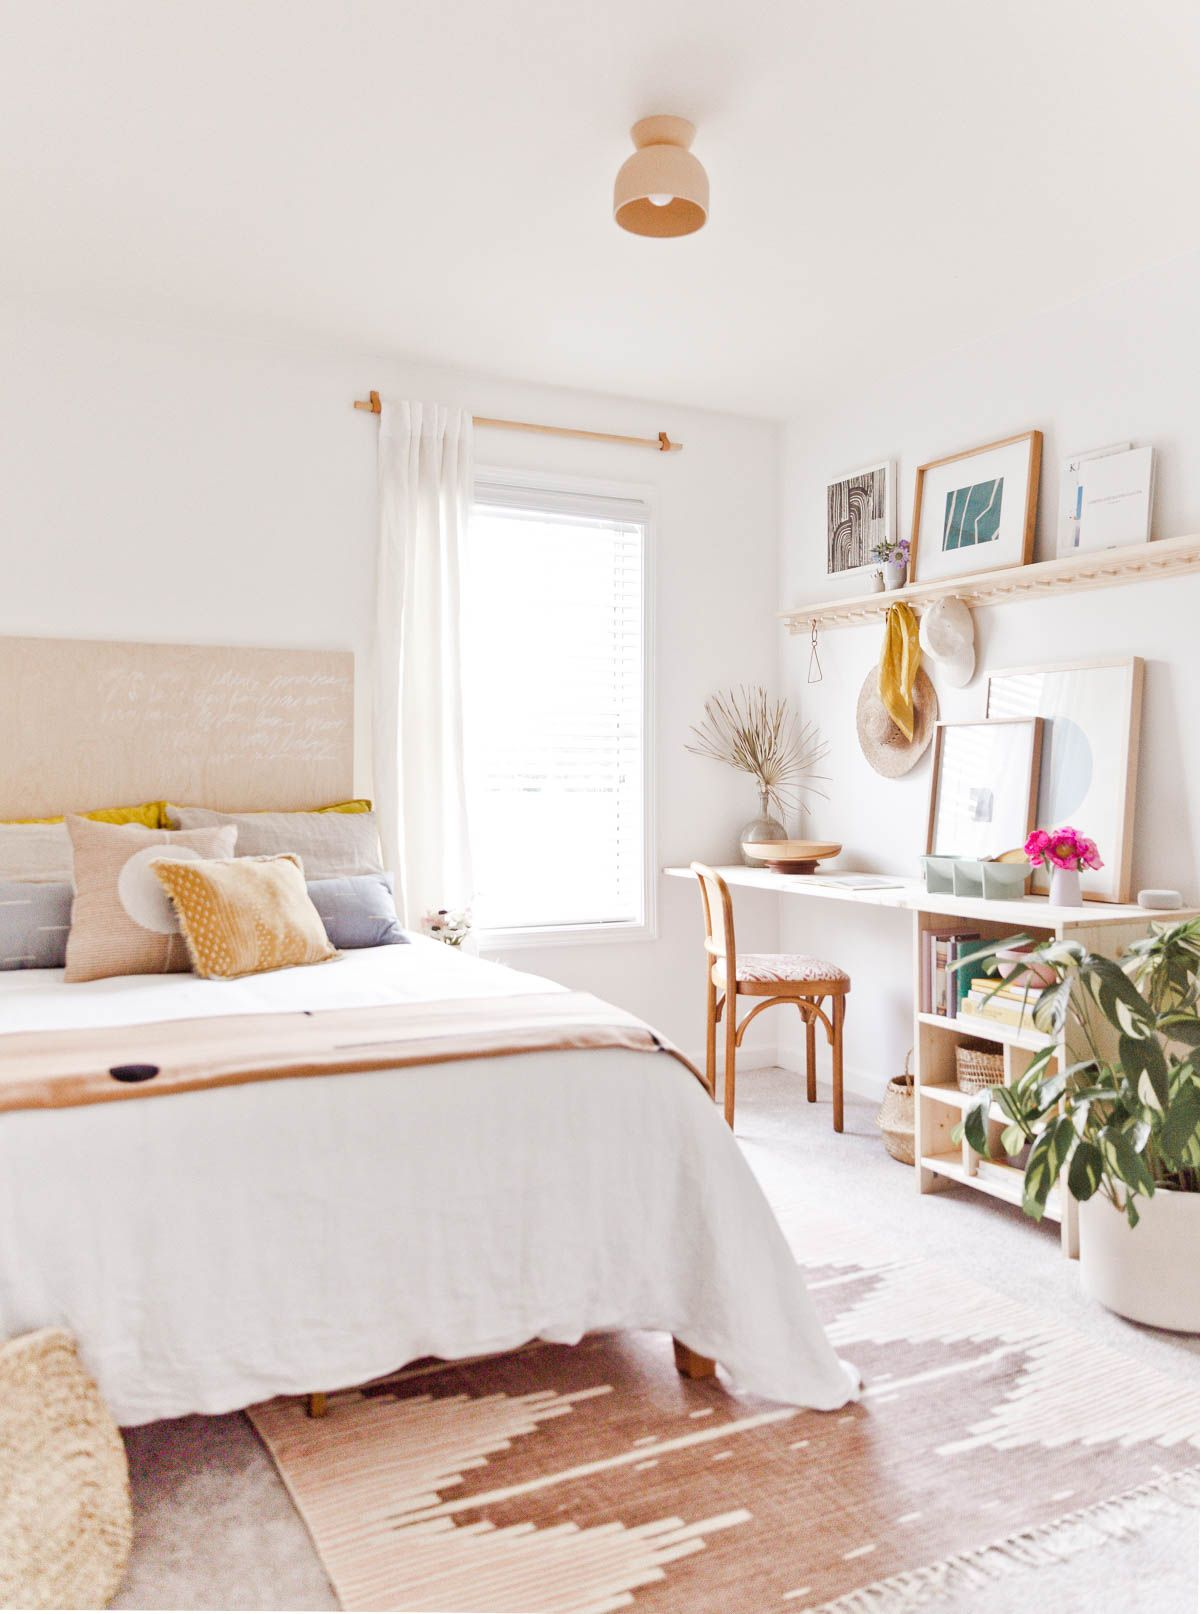 Room Reveal: A Guest Room / Home Office with Renter Friendly Design Solutions